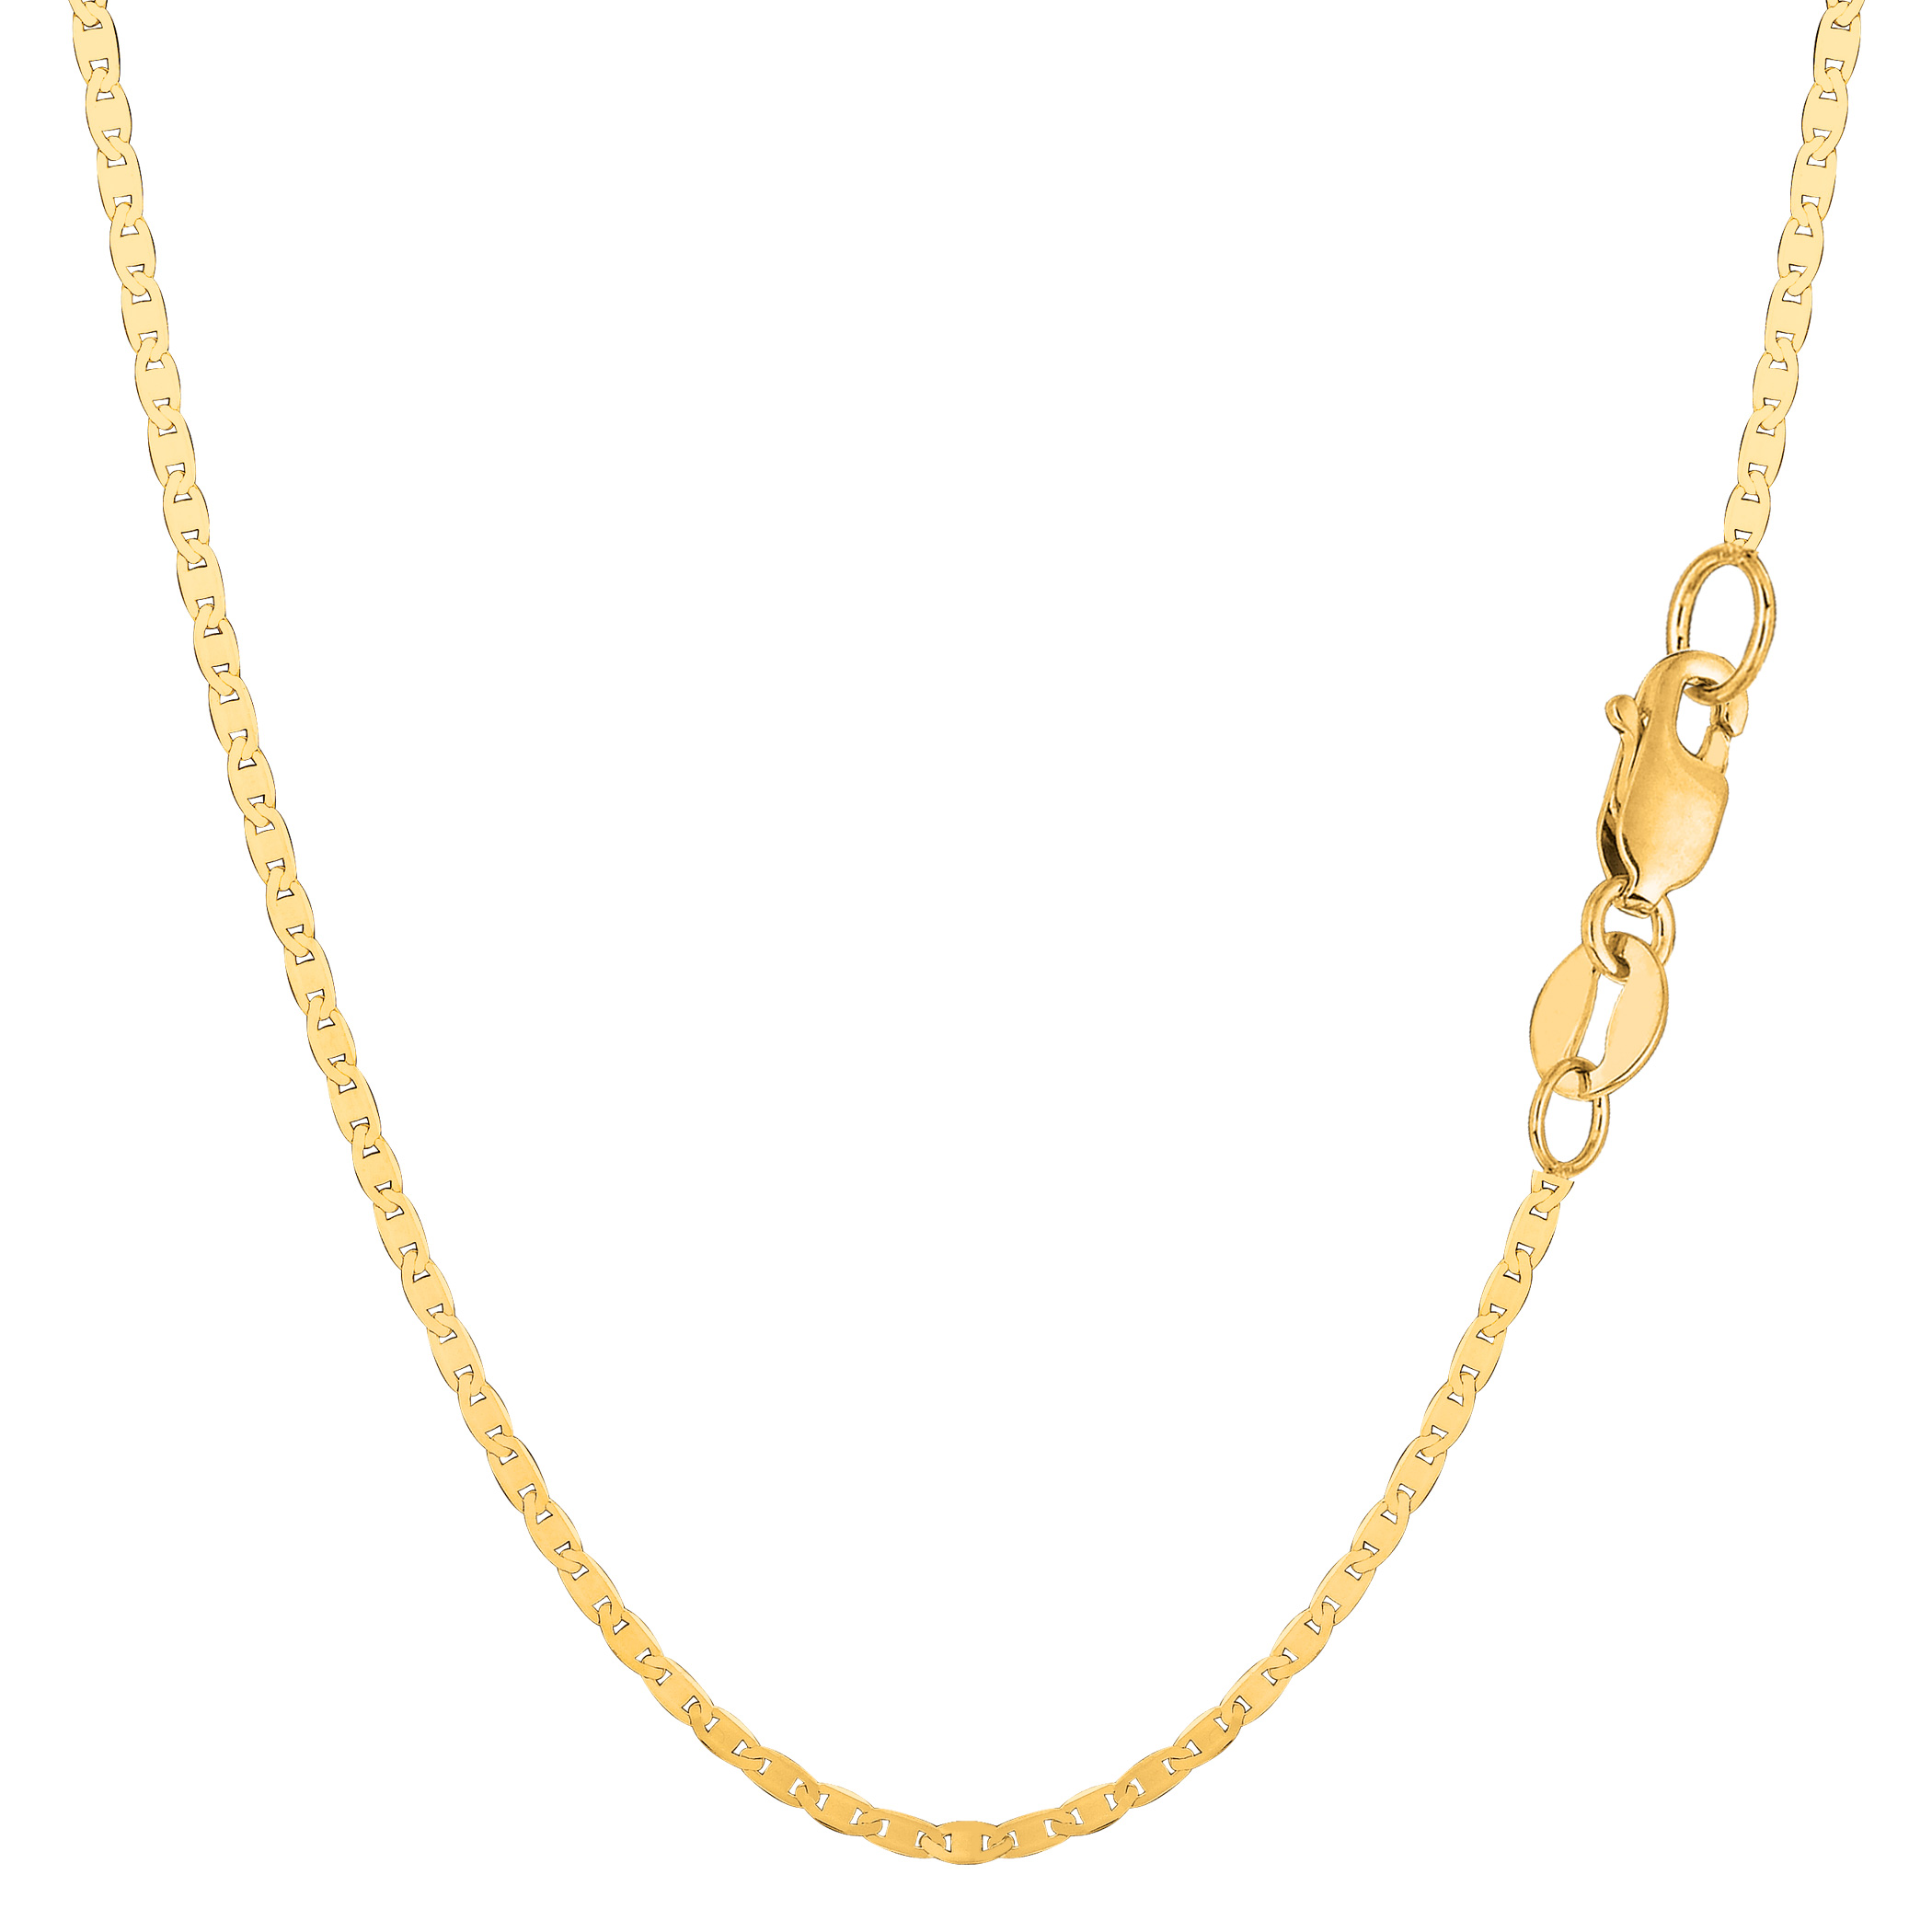 "14k Yellow Gold Mariner Link Chain Necklace, 1.7 mm, 16"" - image 1 of 1"